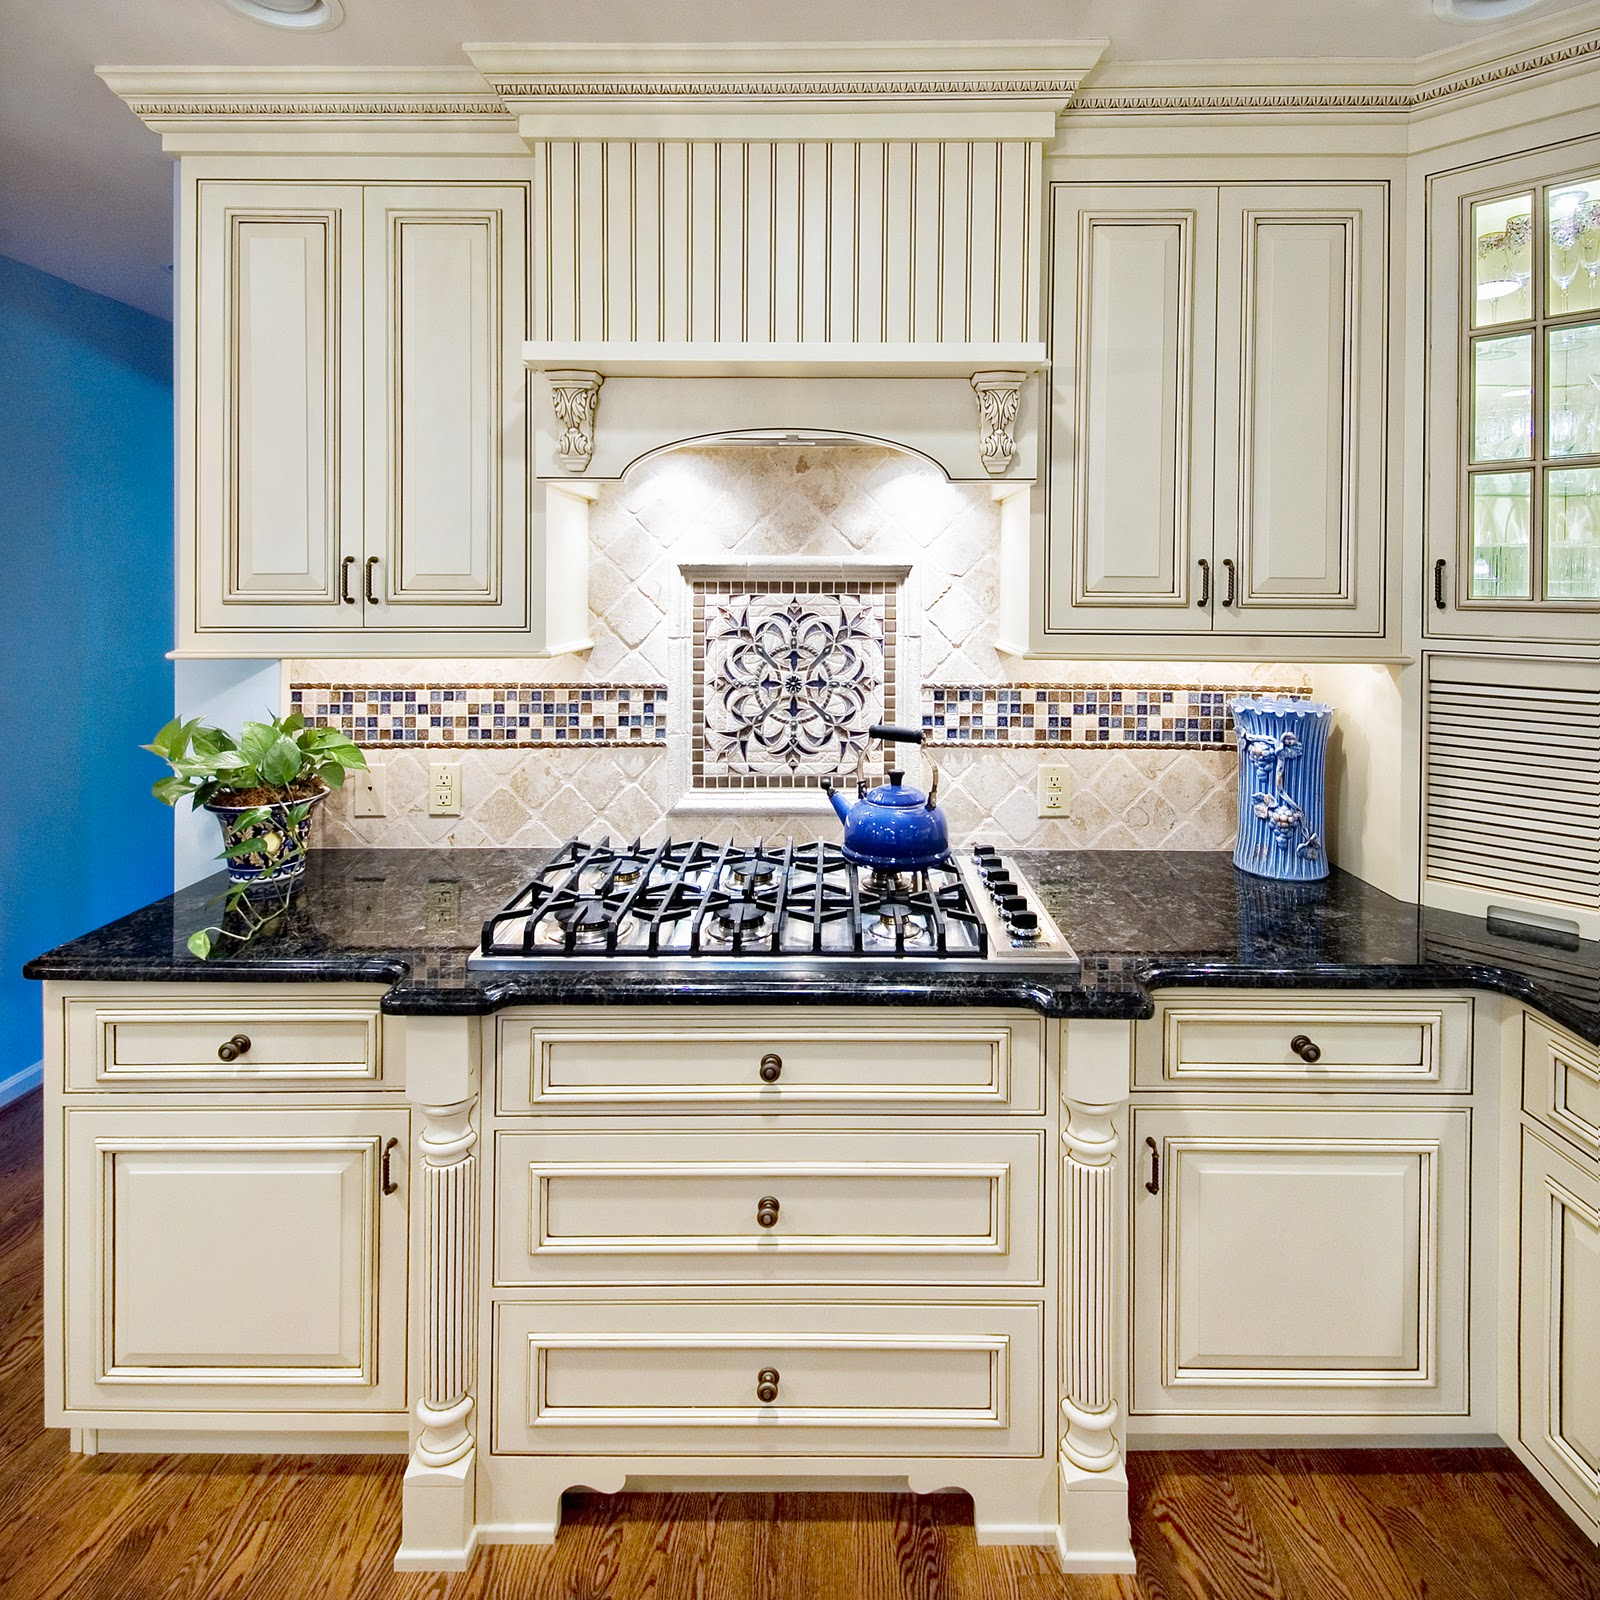 a touch of blue blue cabinets kitchen